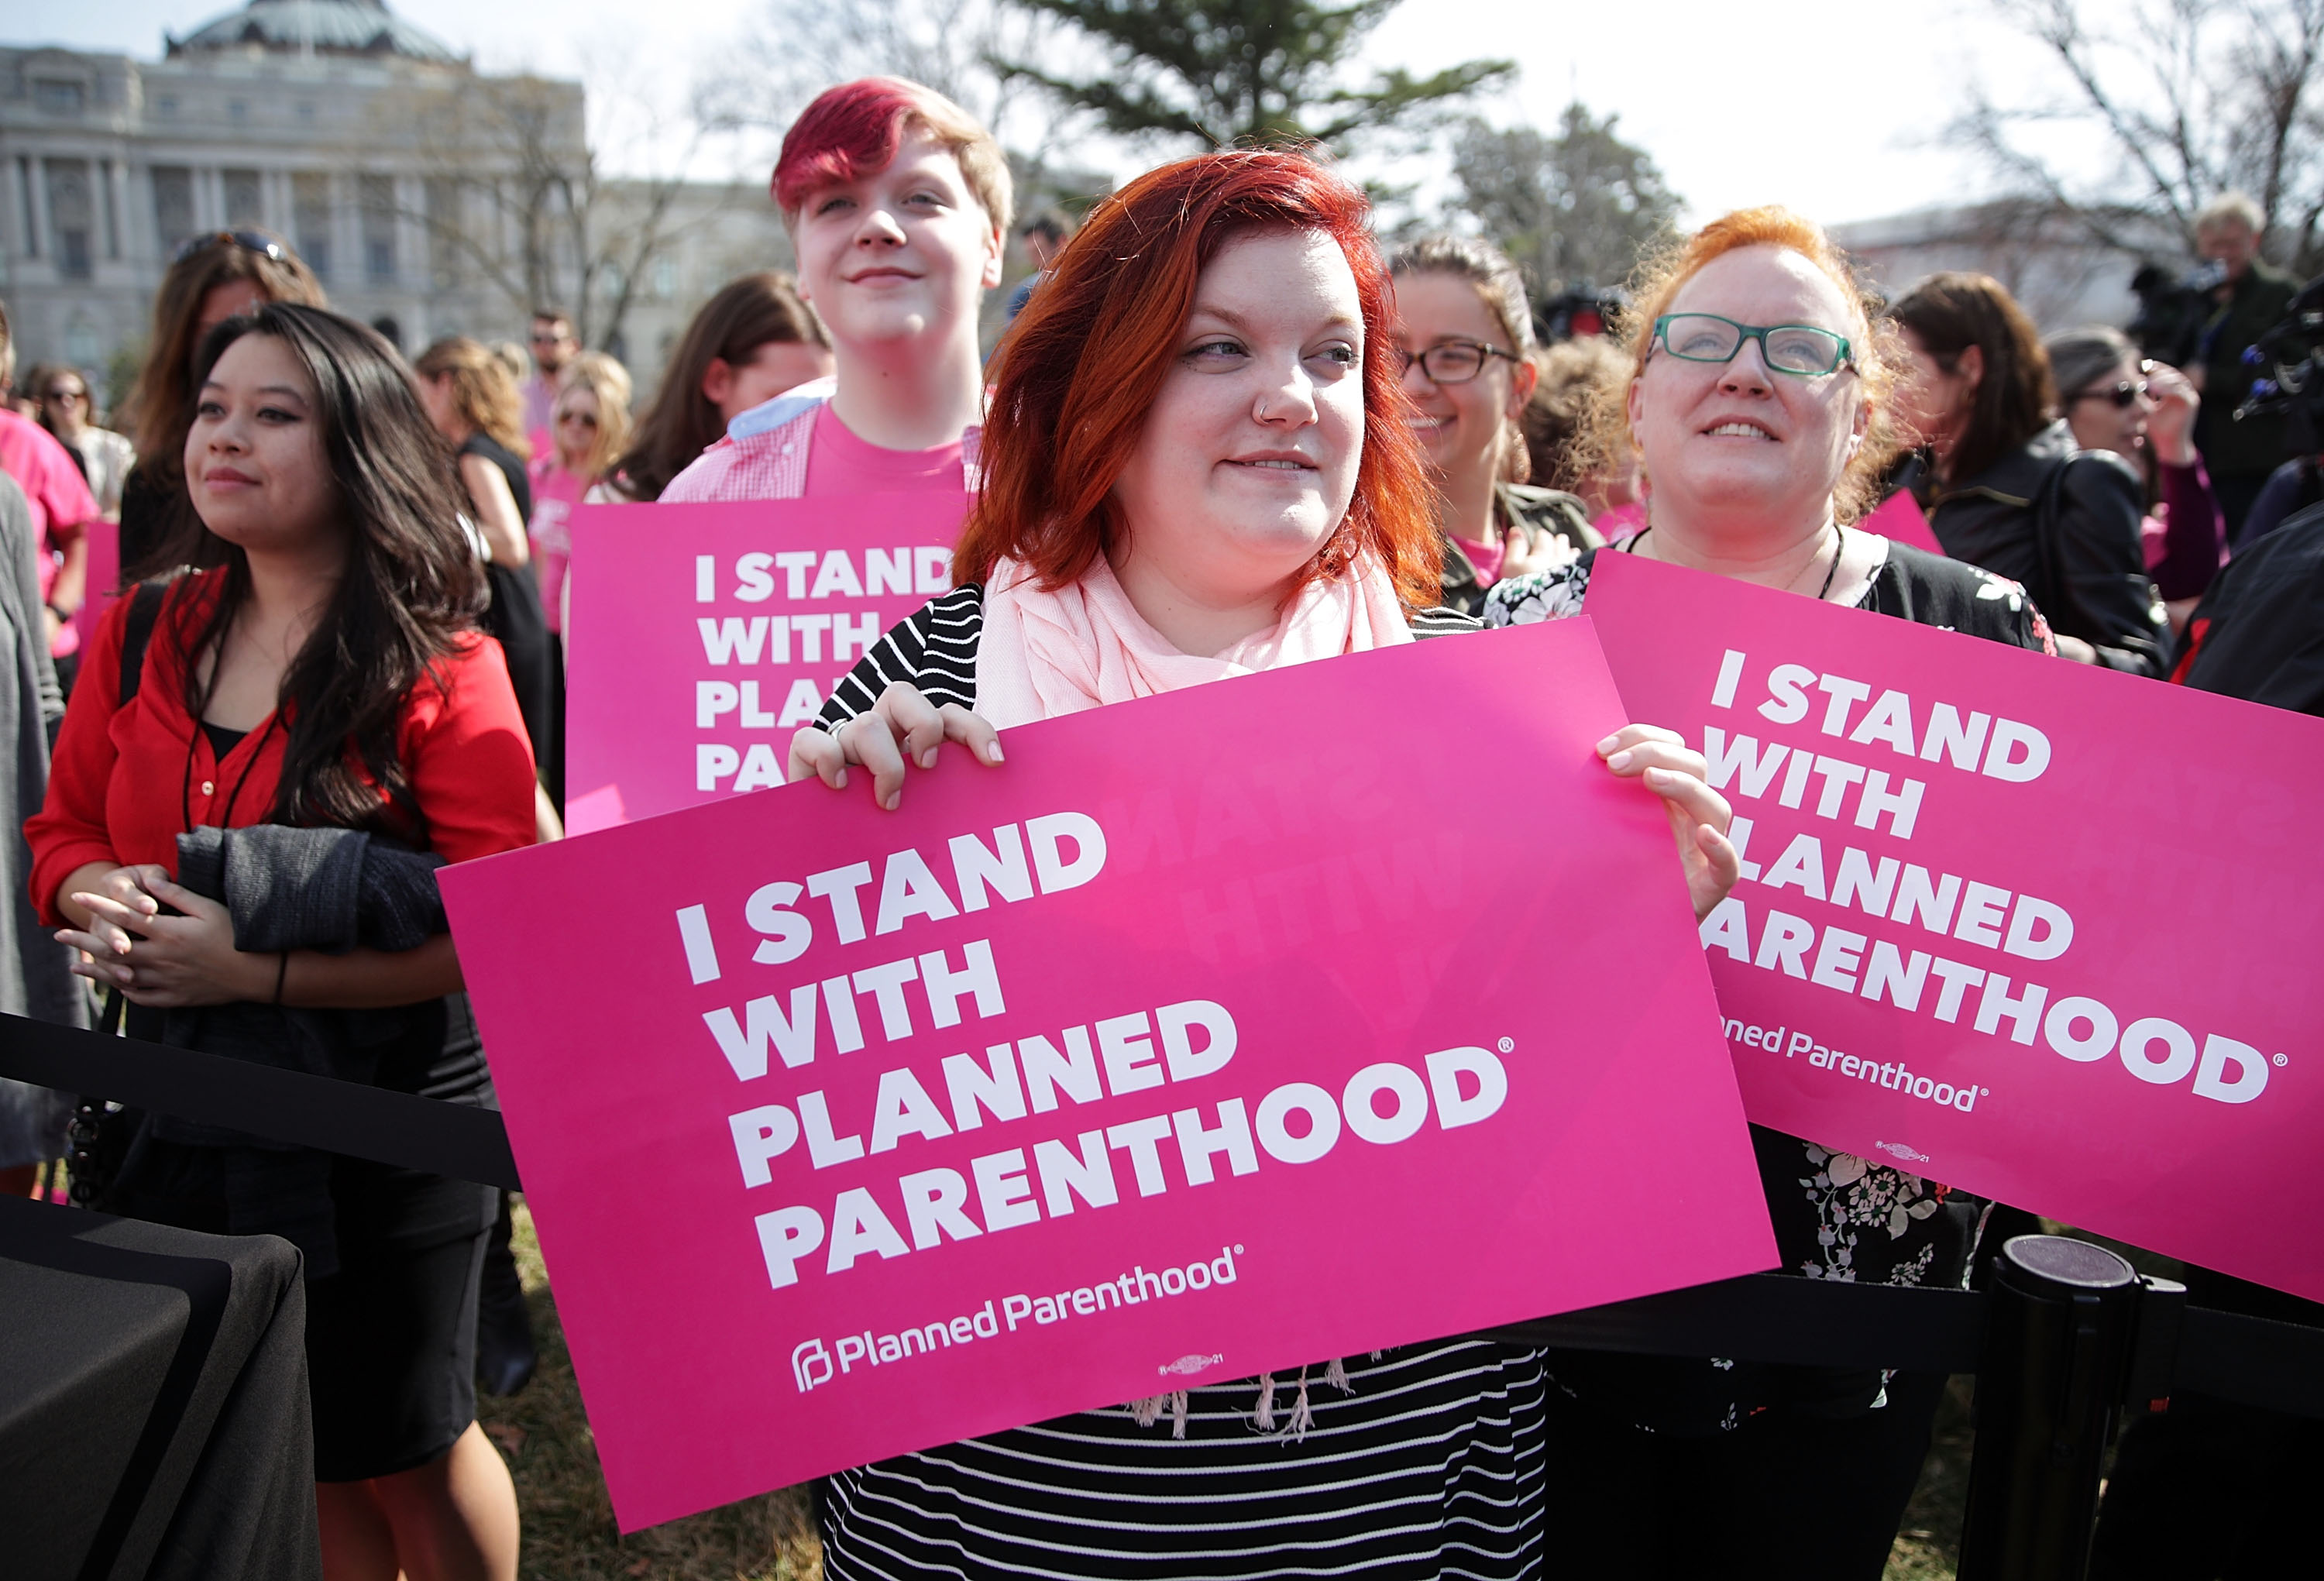 WASHINGTON, DC - MARCH 01:  Activists participate in a rally to support Planned Parenthood March 1, 2017 on Capitol Hill in Washington, DC. Planned Parenthood held a 'We Are Planned Parenthood Capitol Takeover Day' to lobby legislators not to defund the organization.  (Photo by Alex Wong/Getty Images)